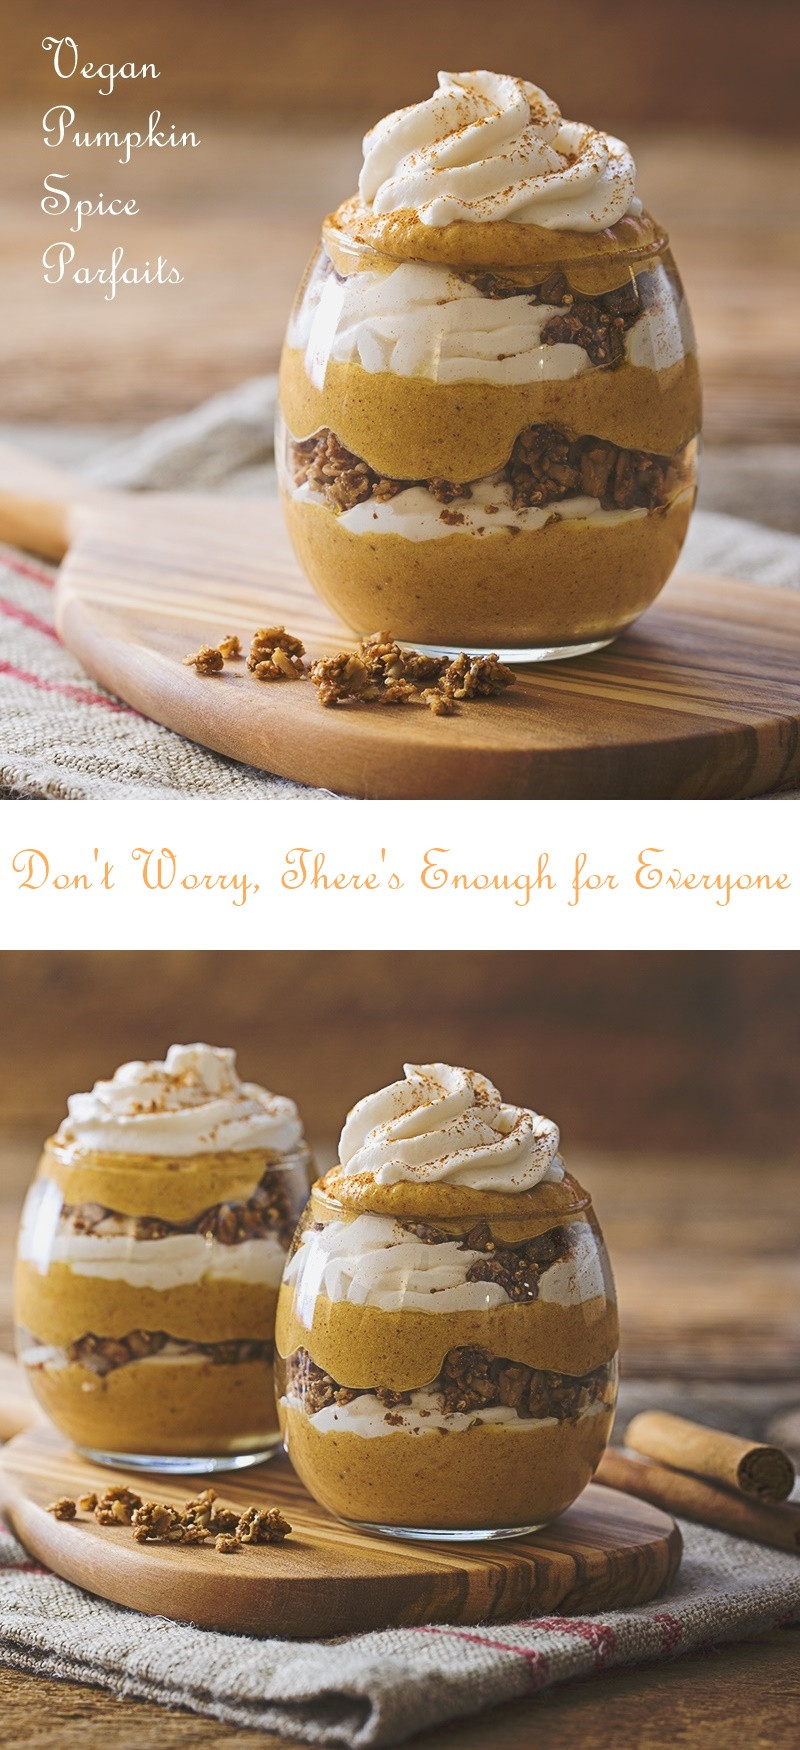 Pumpkin Recipes Vegan  Vegan Pumpkin Spice Parfaits Recipe Gluten Free